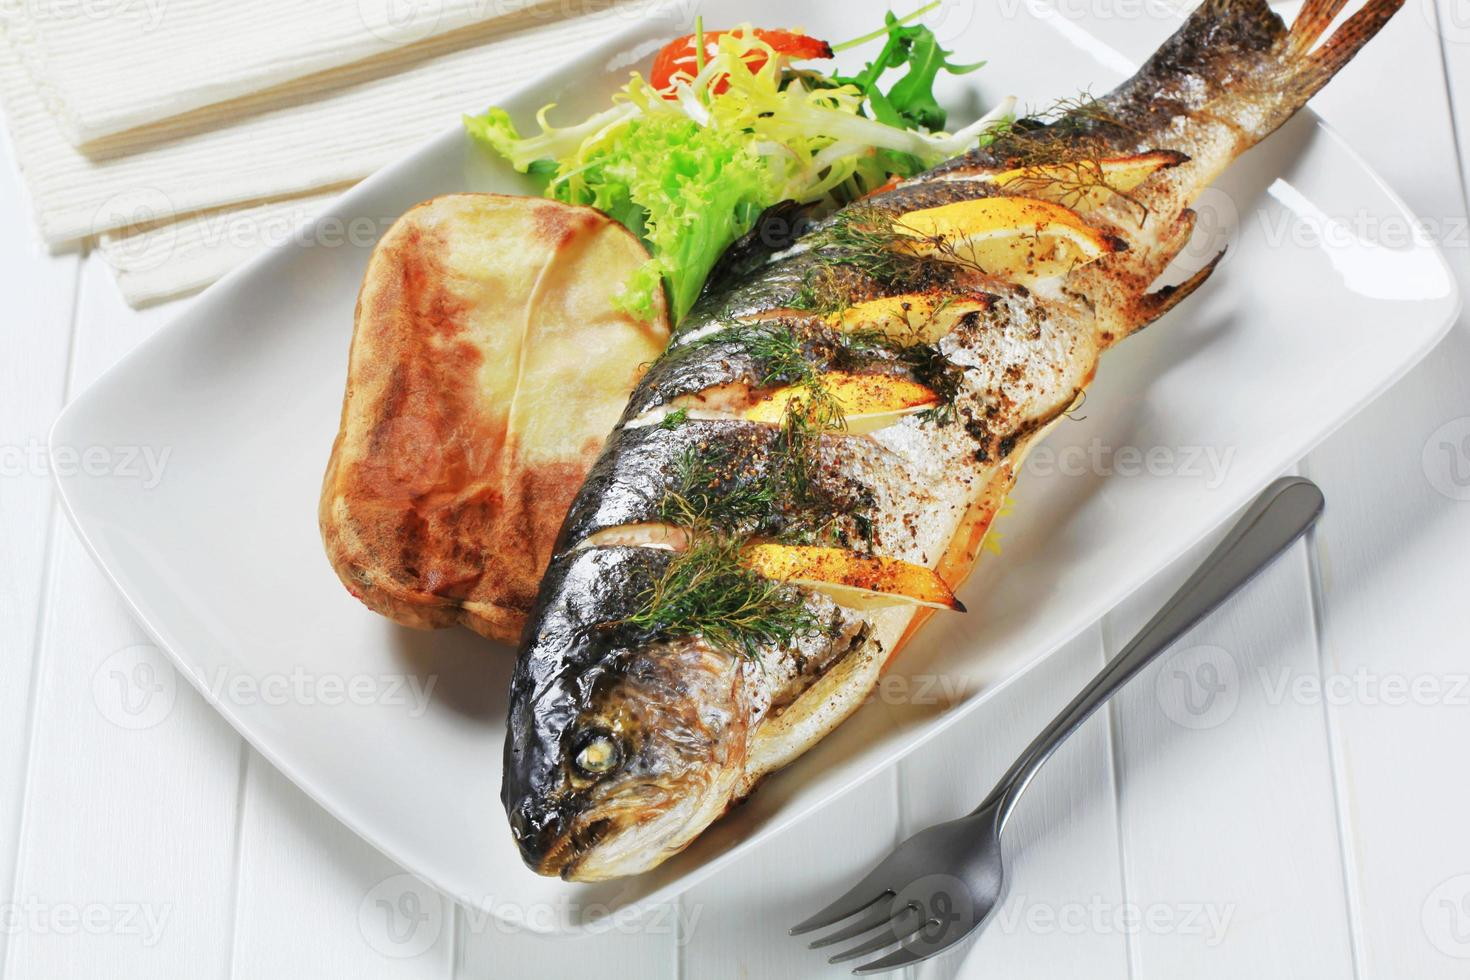 Lemon dill trout with baked potato photo